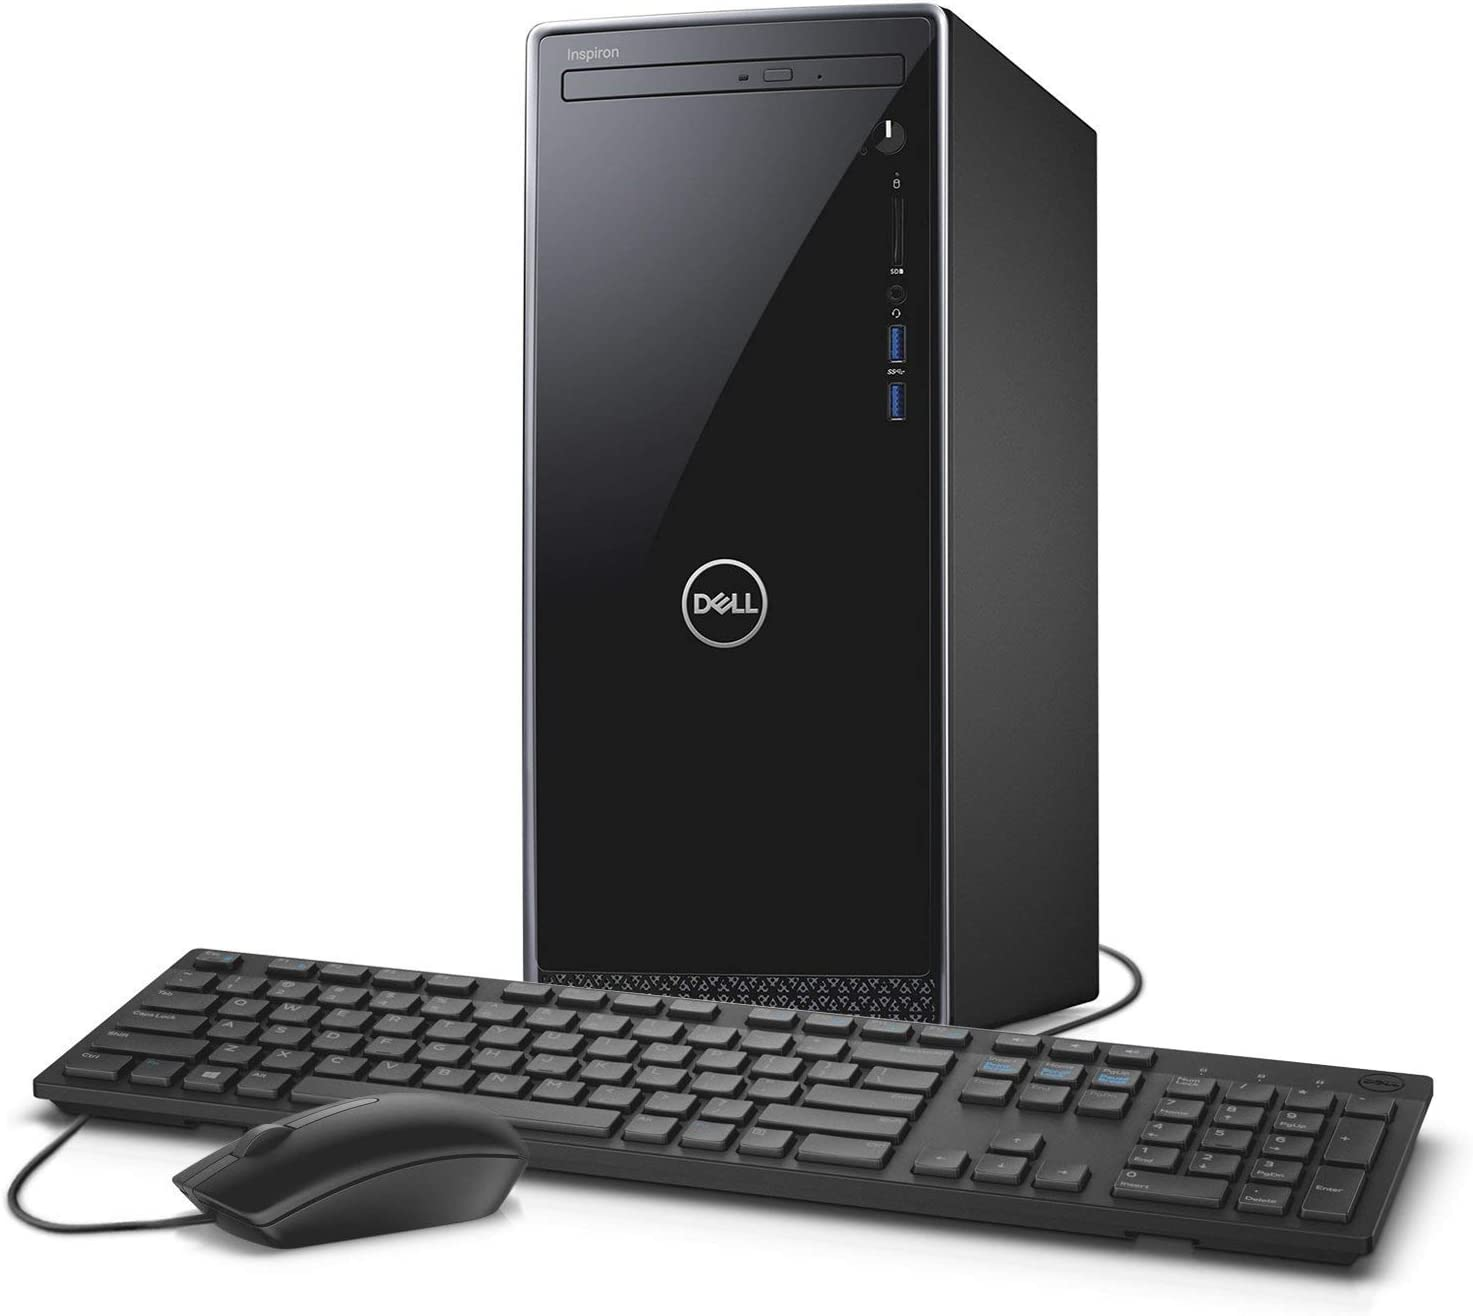 2019 Flagship Dell Inspiron 3670 Business Desktop, Intel Six-Core i5-8400 up to 4GHz 16GB DDR4 512GB SSD HDMI DVD-RW 802.11bgn Bluetooth 4.1 MaxxAudio Pro USB Keyboard and Mouse Win 10